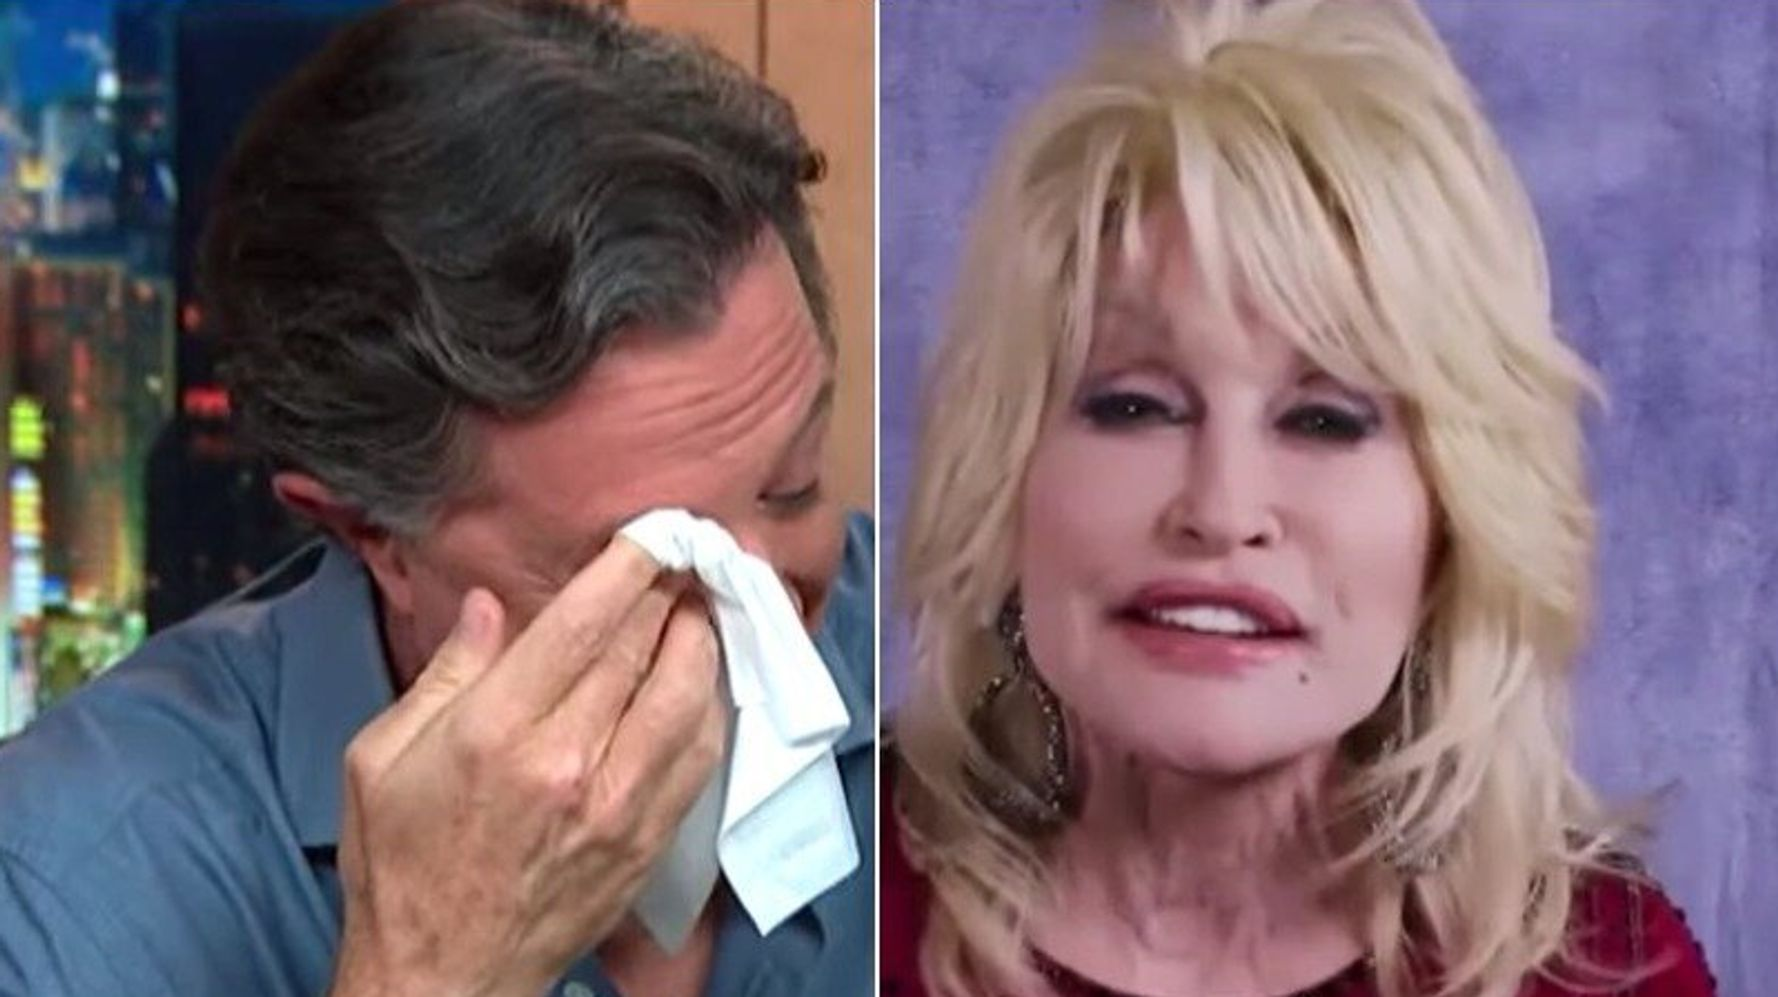 Dolly Parton Reduces Stephen Colbert To Tears With Haunting A Cappella Performance